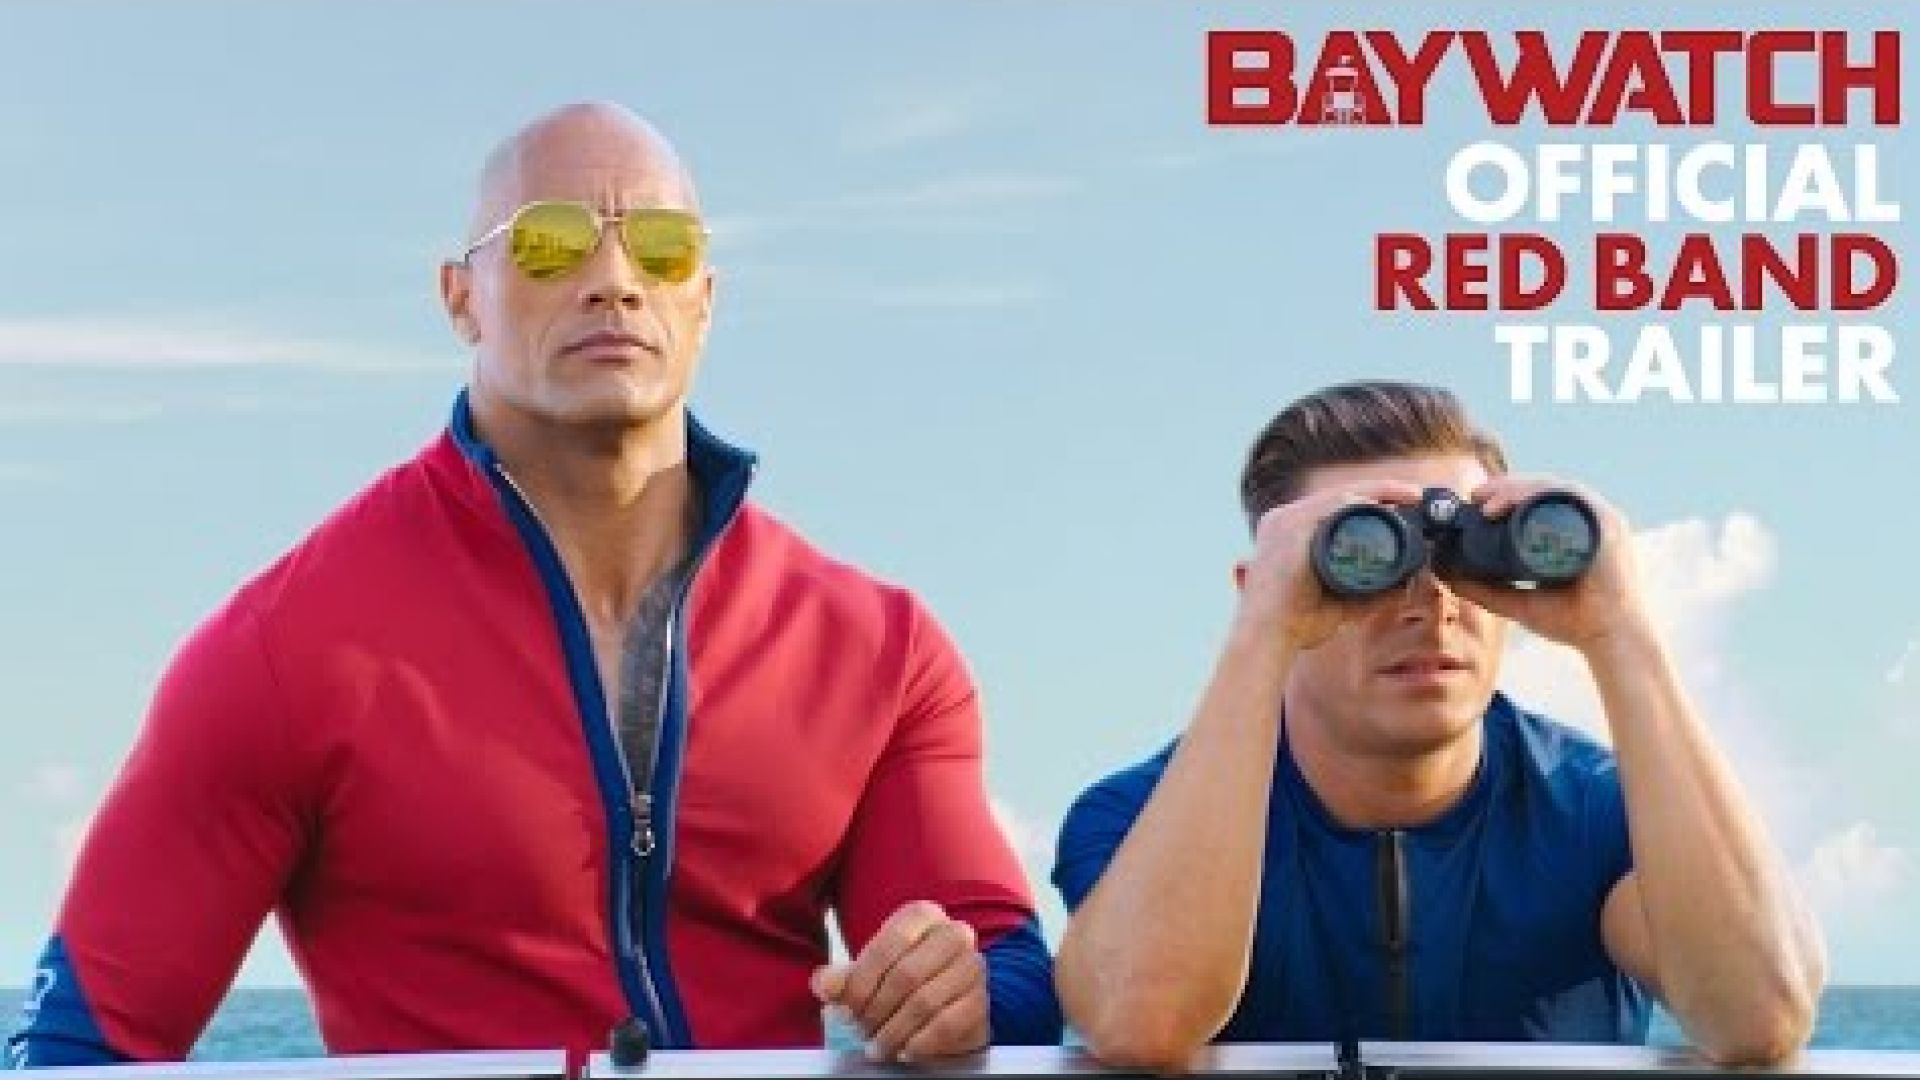 New Red Band Trailer for 'Baywatch' Has Balls